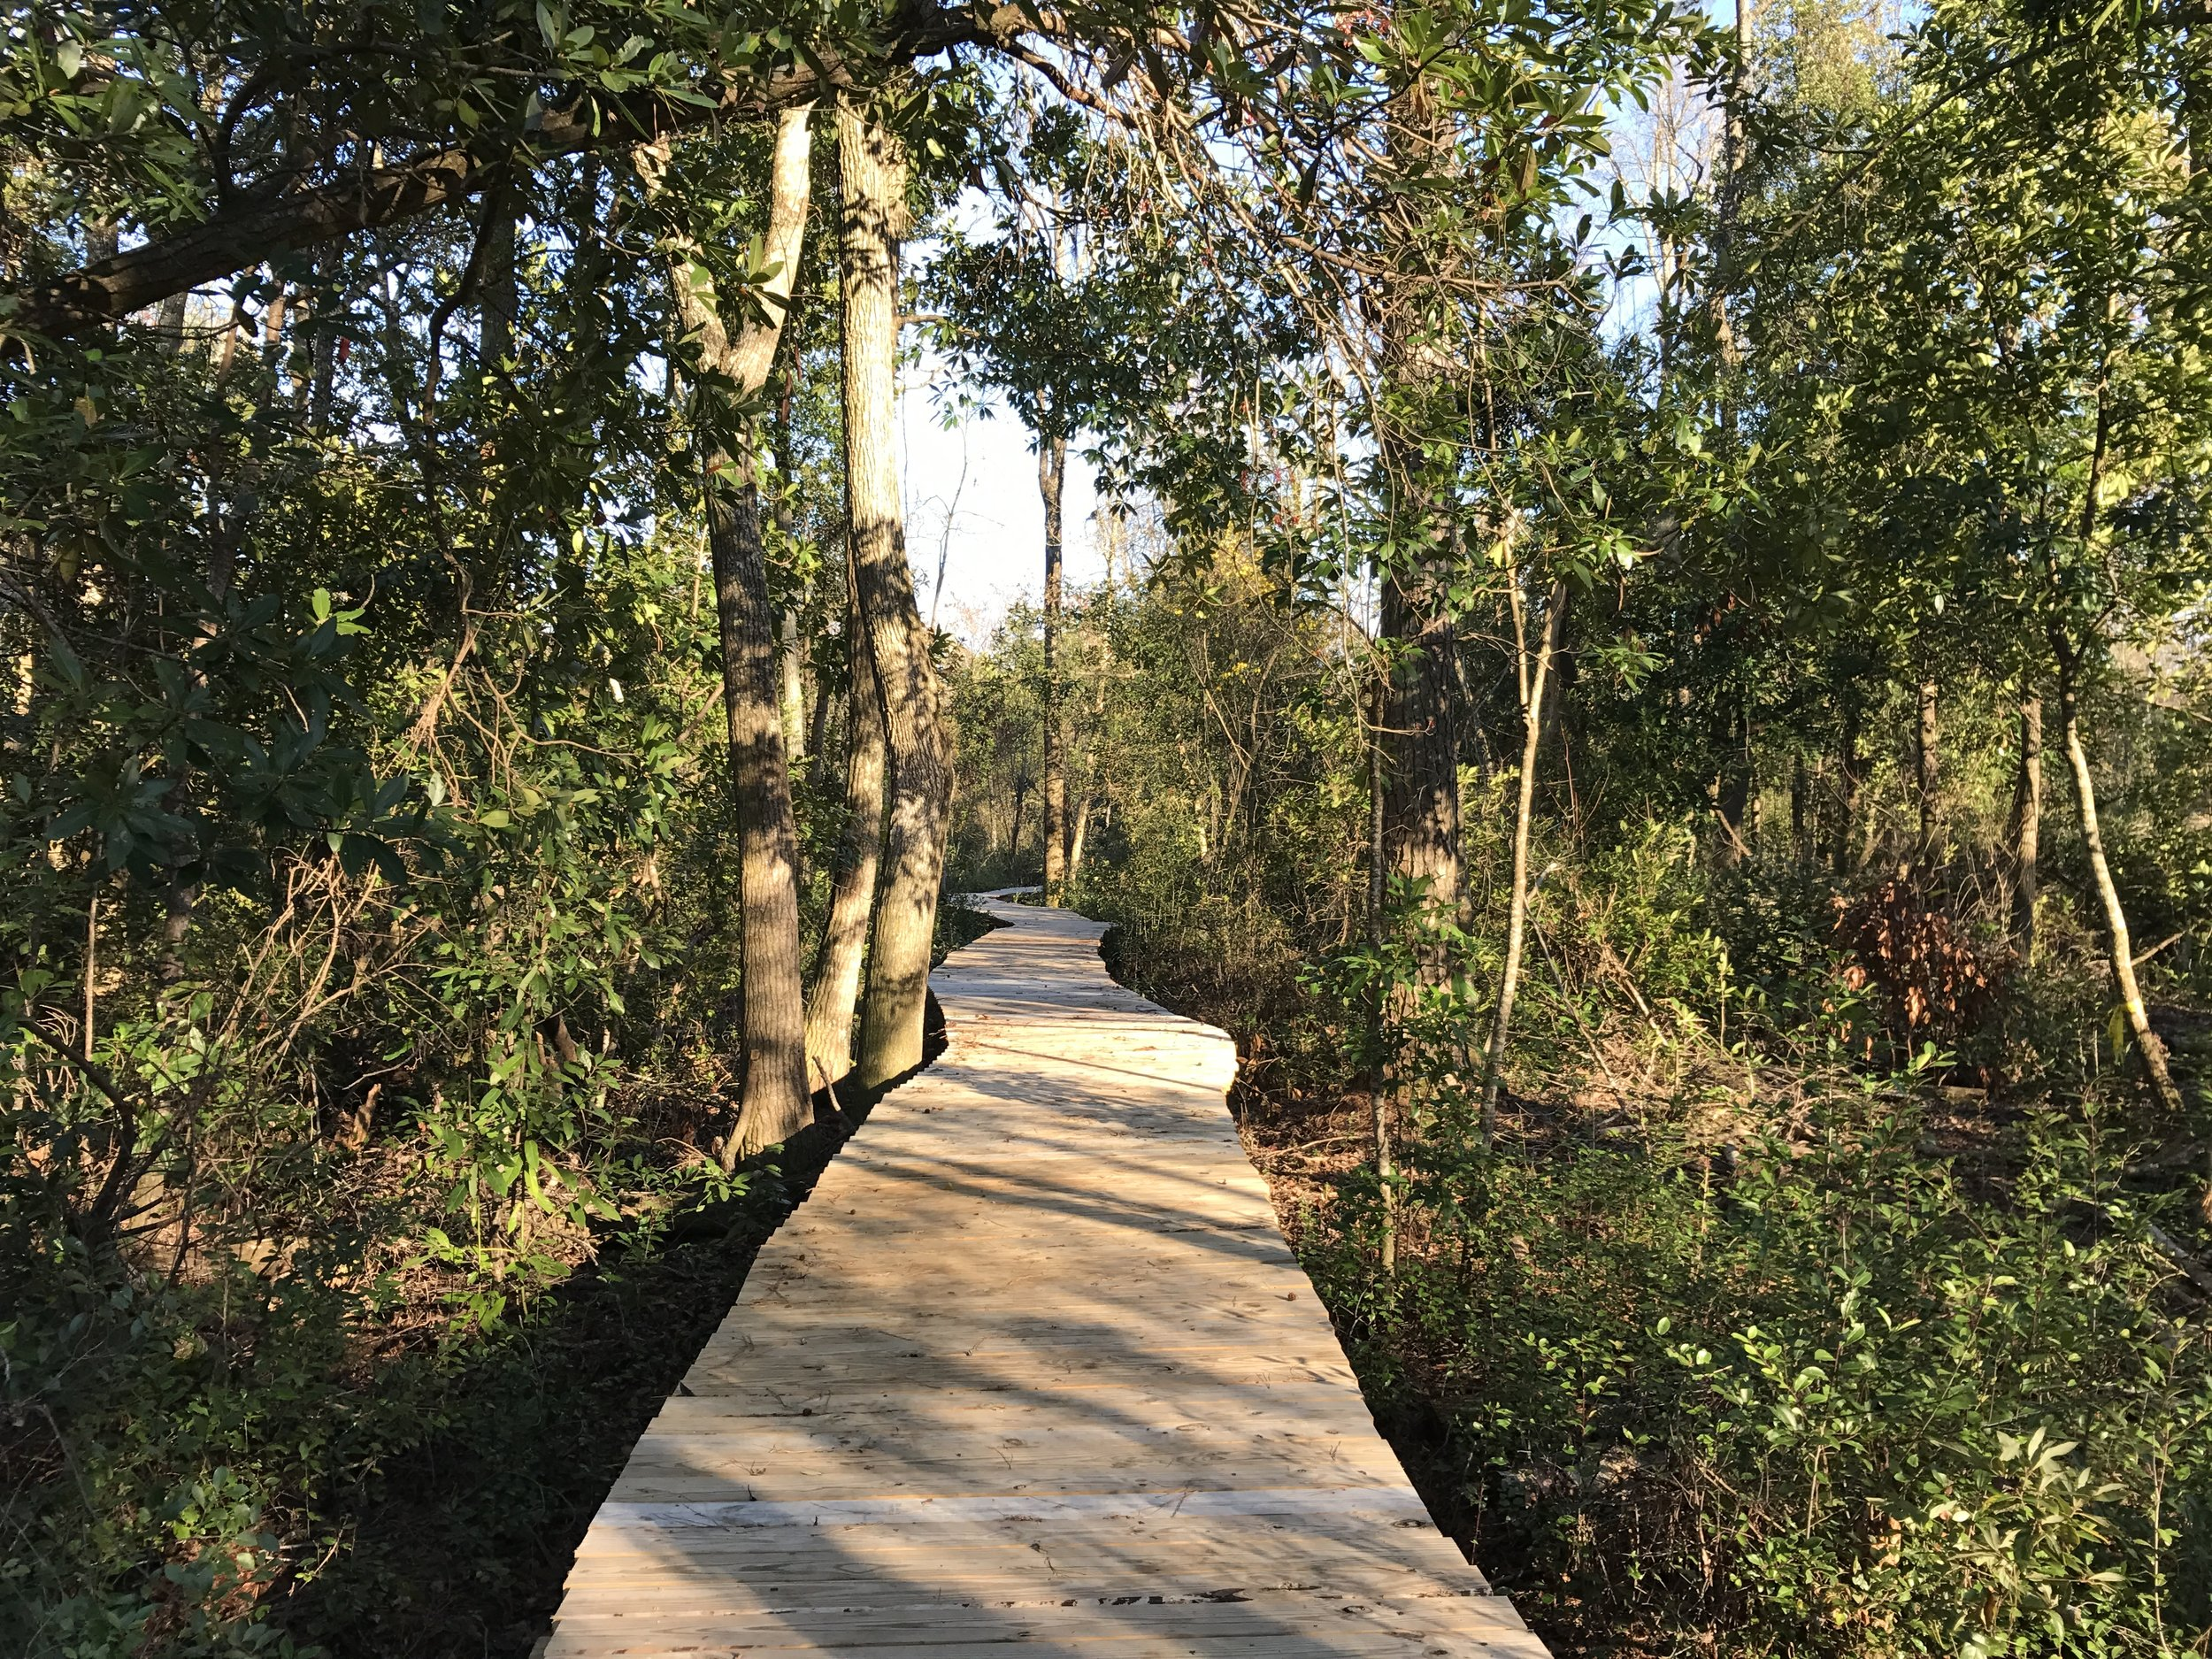 Lake Waccamaw State Park Connector Trail